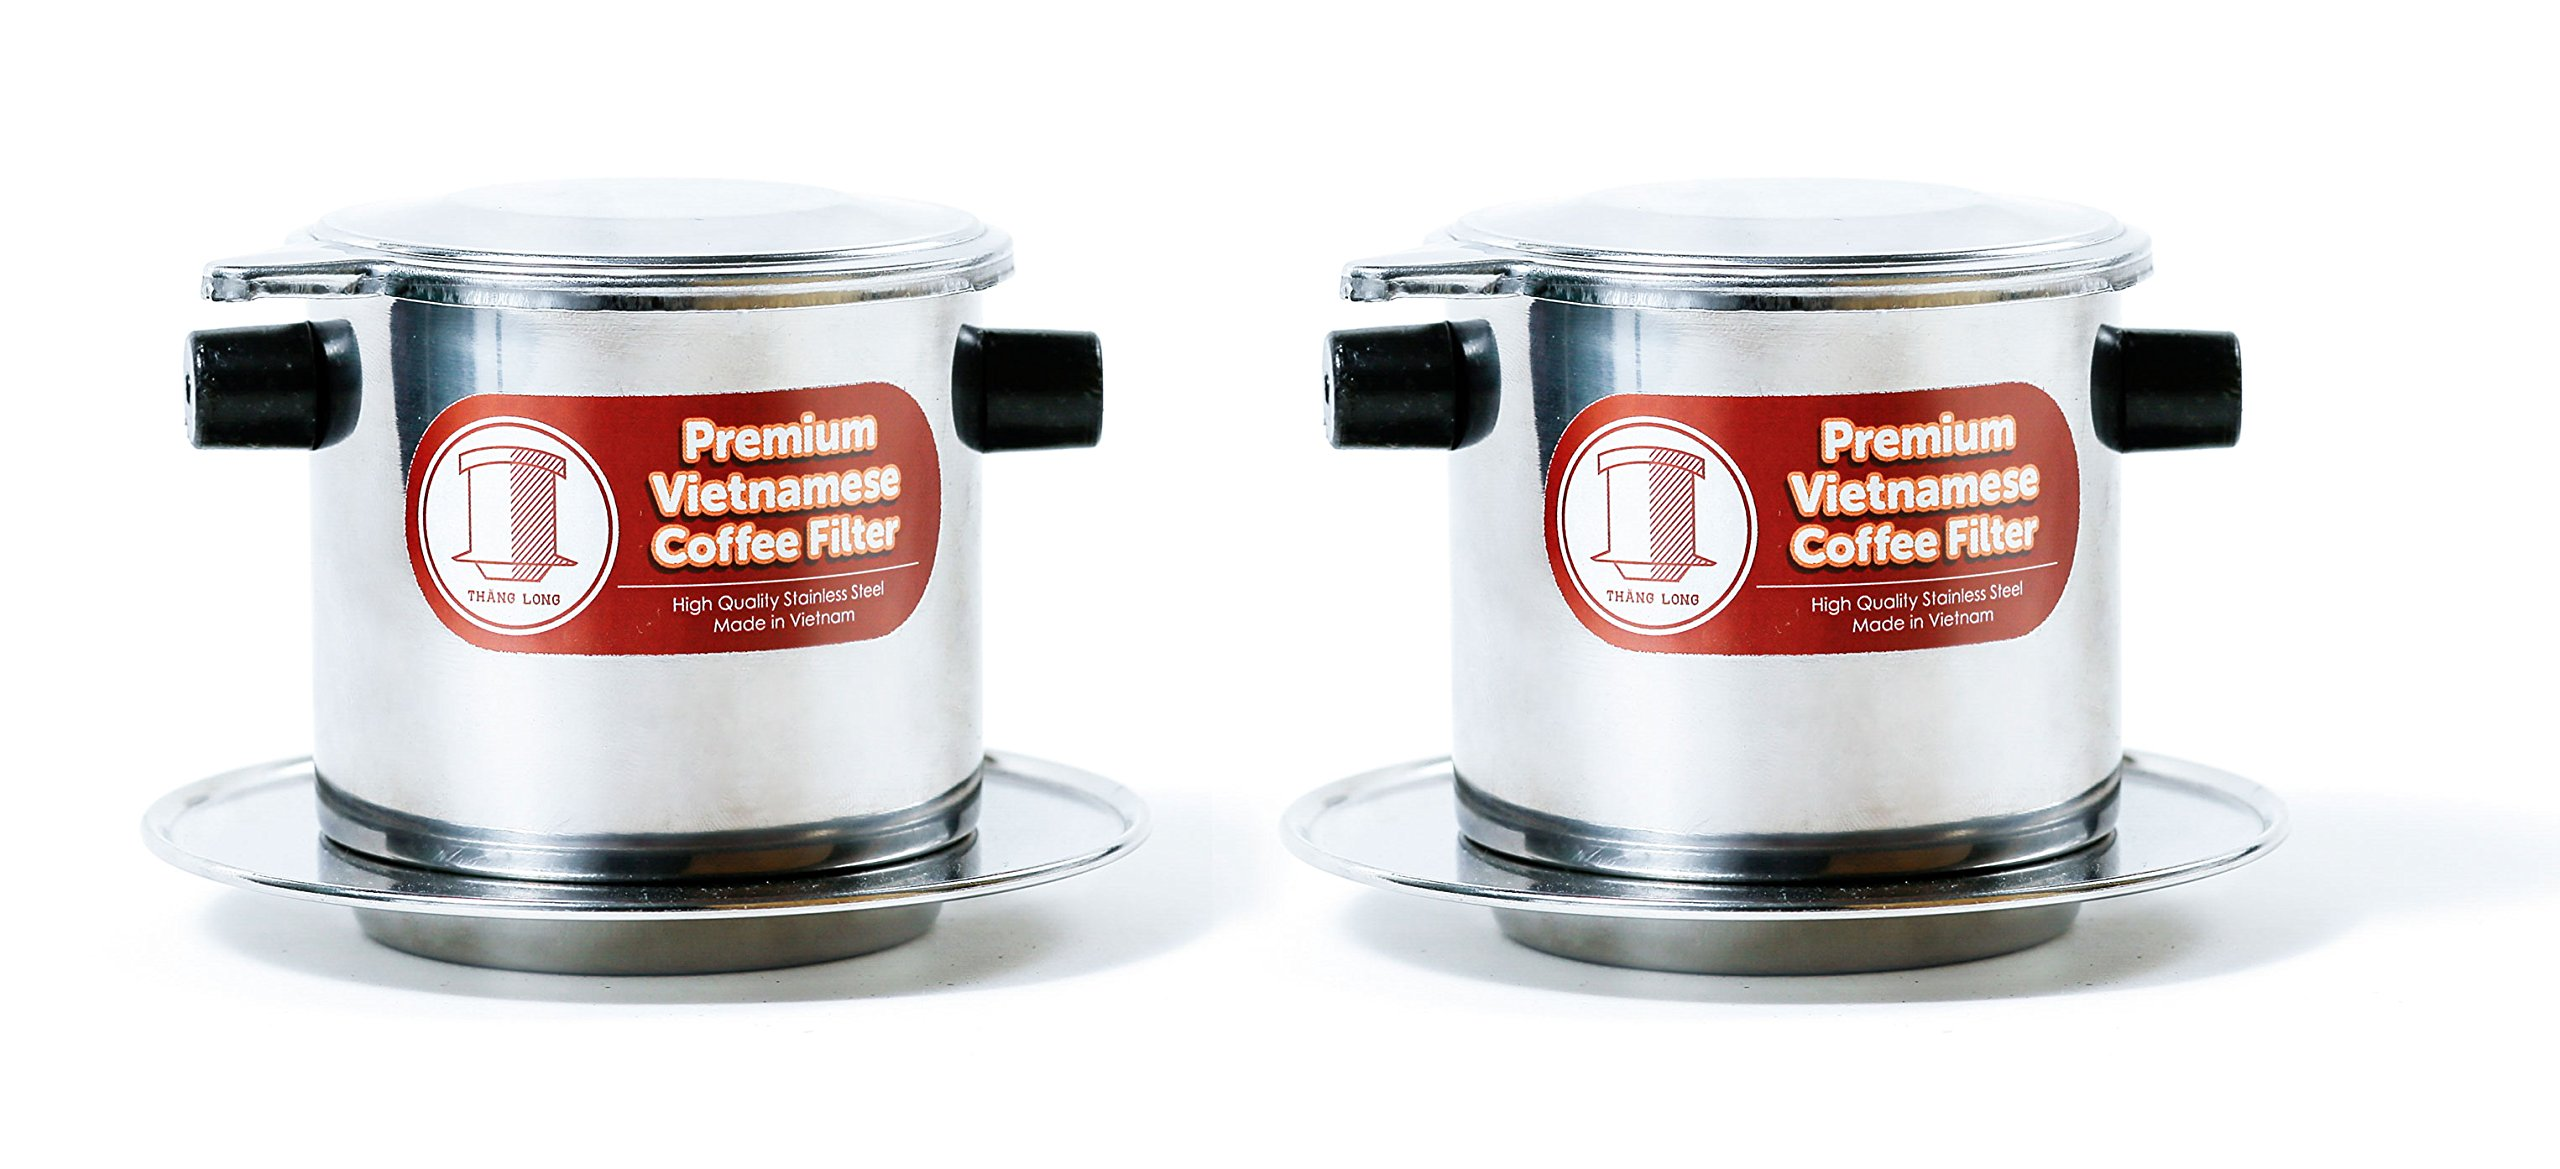 2 x Stainless Steel Vietnamese Coffee Filter Press 8 oz. Works well w/French Grind Coffee. Gravity Insert